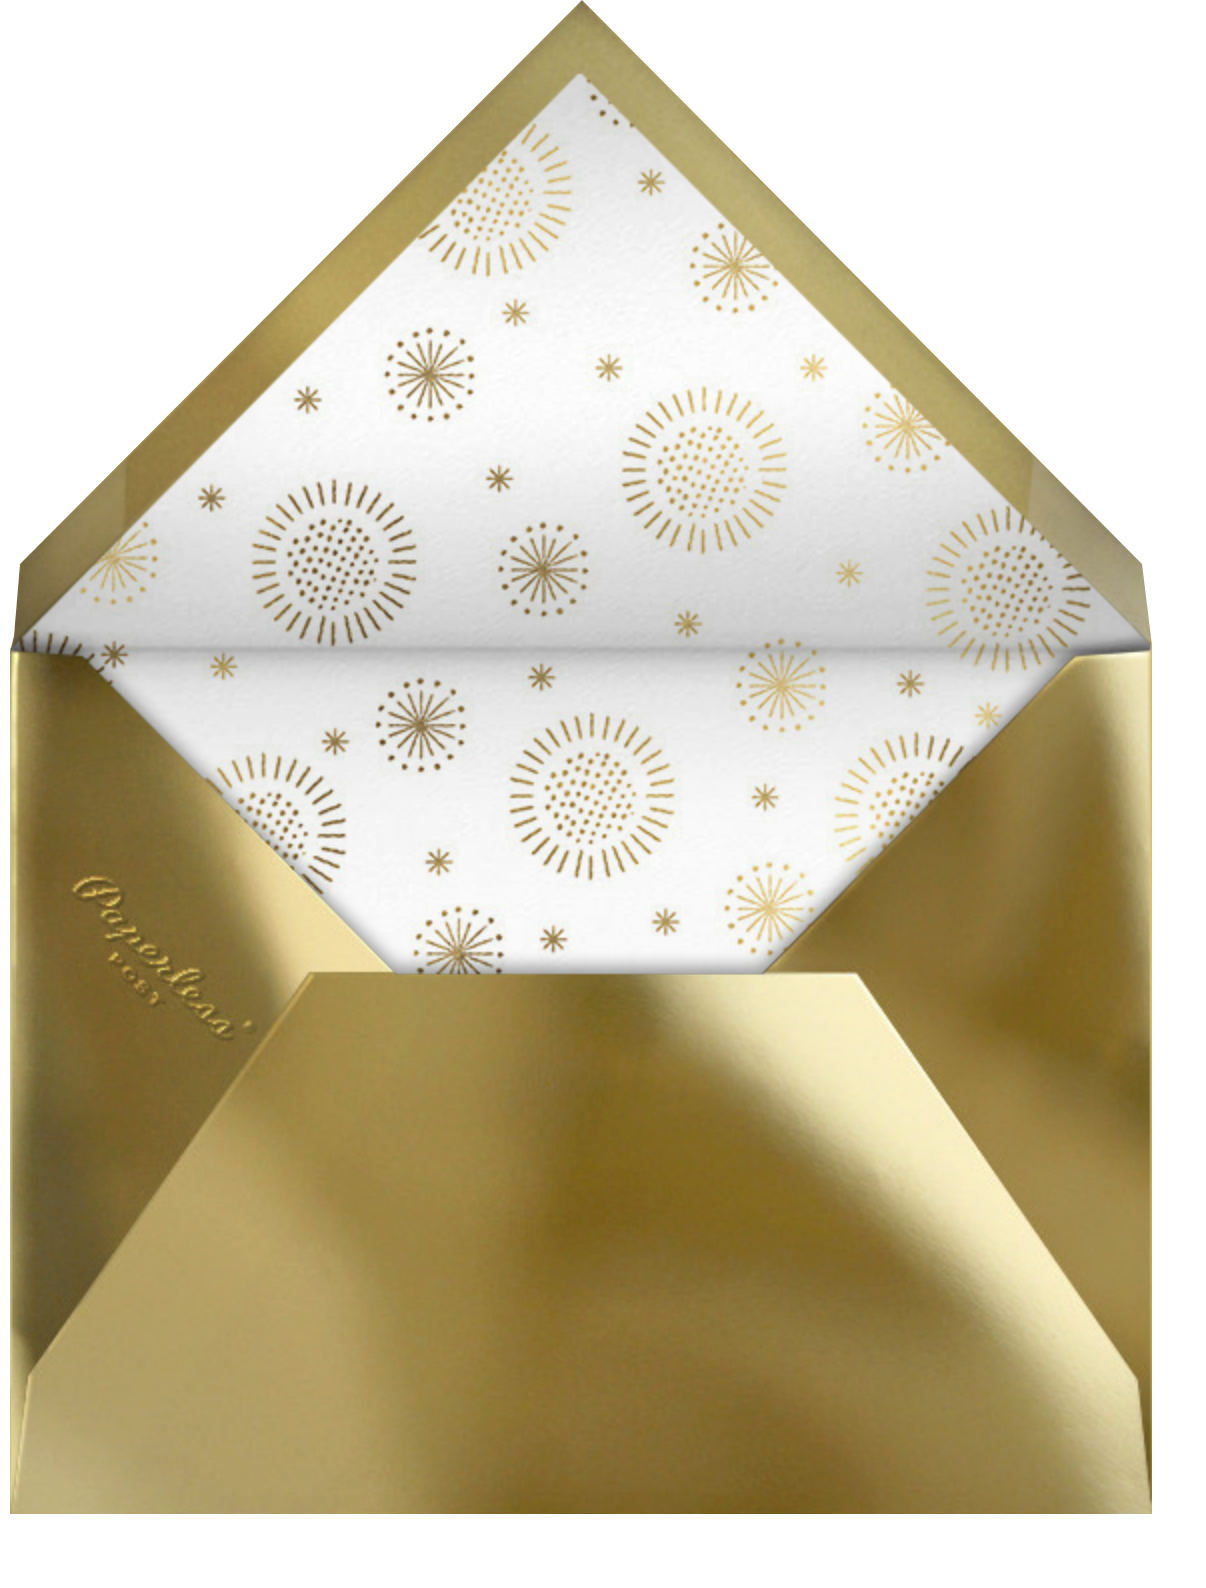 May Belle (Invitation) - Gold - Paperless Post - All - envelope back